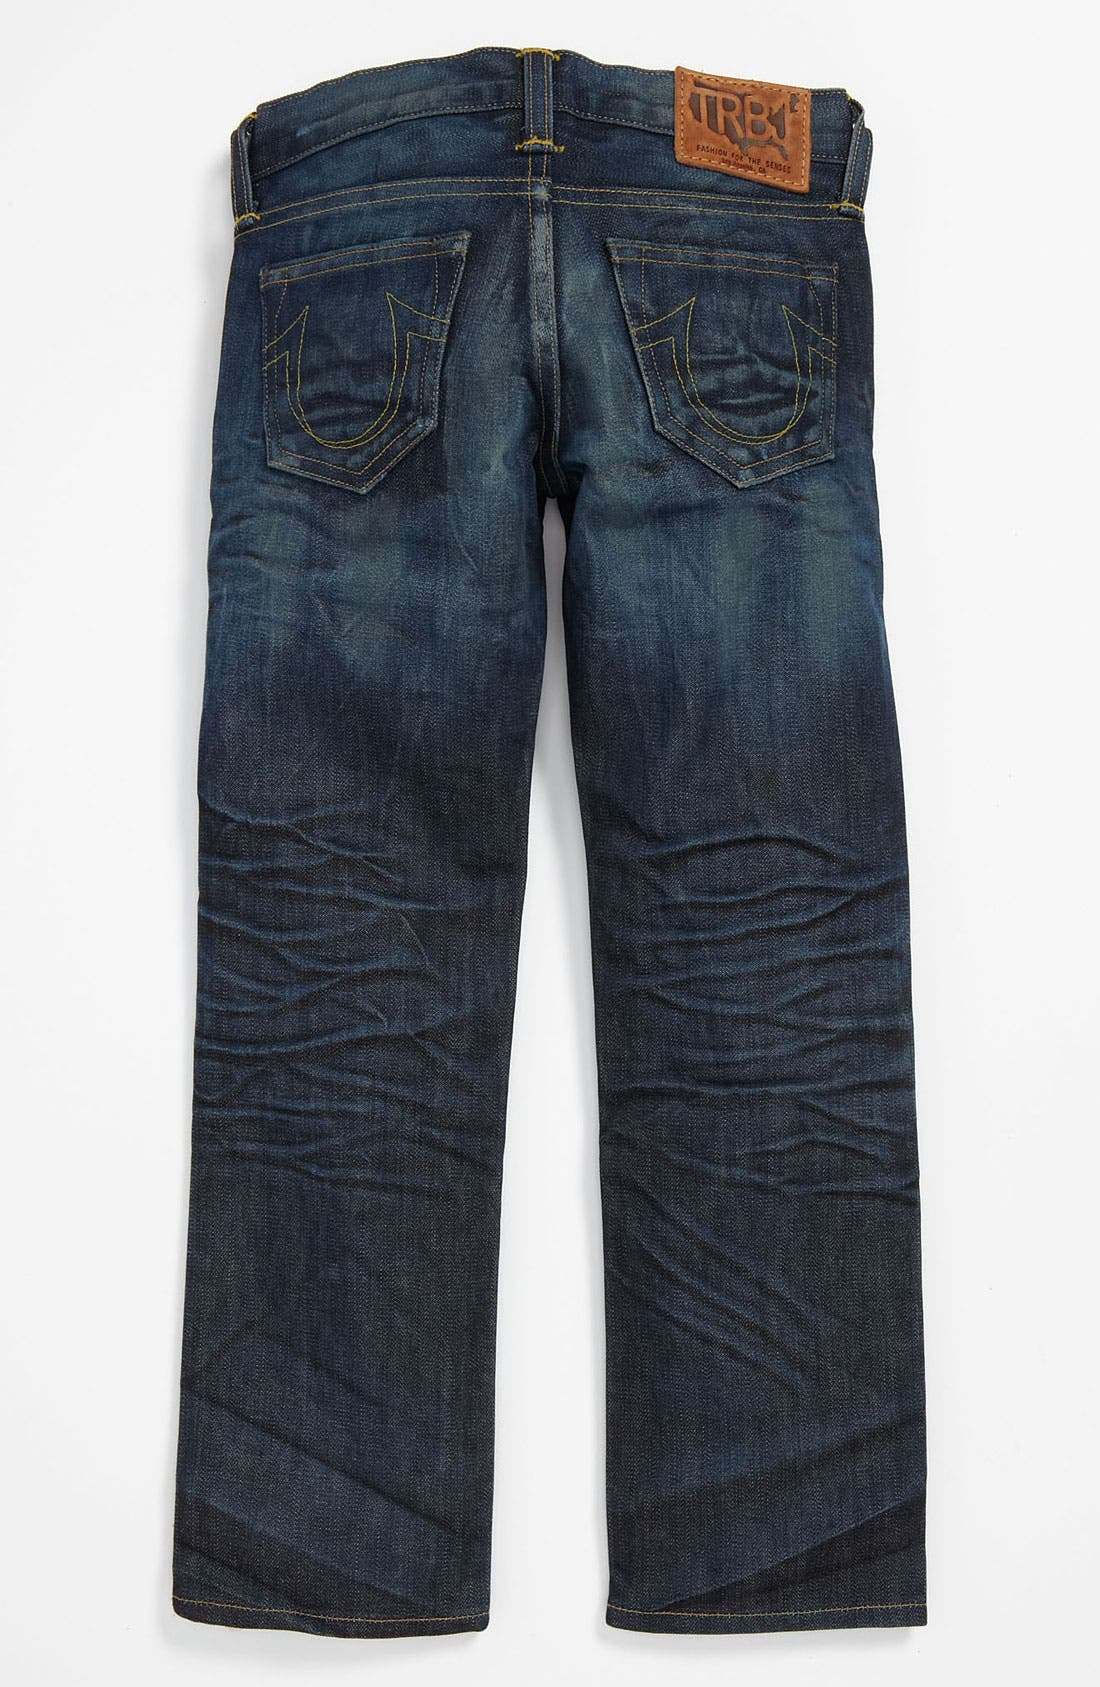 Alternate Image 1 Selected - True Religion Brand Jeans 'Herbie Phoenix' Jeans (Little Boys)